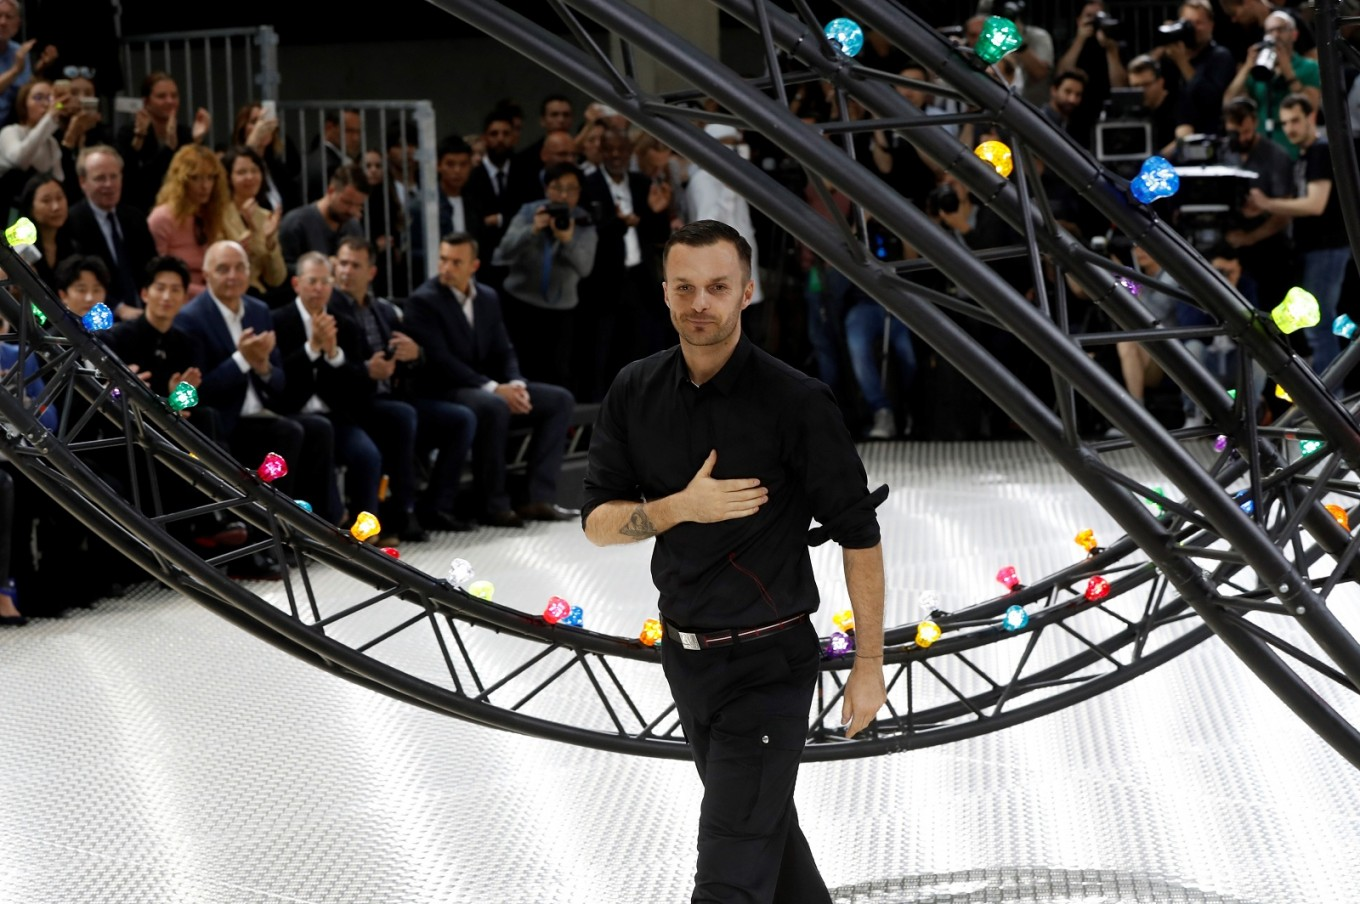 Designer Van Assche to take over as Berluti's creative director